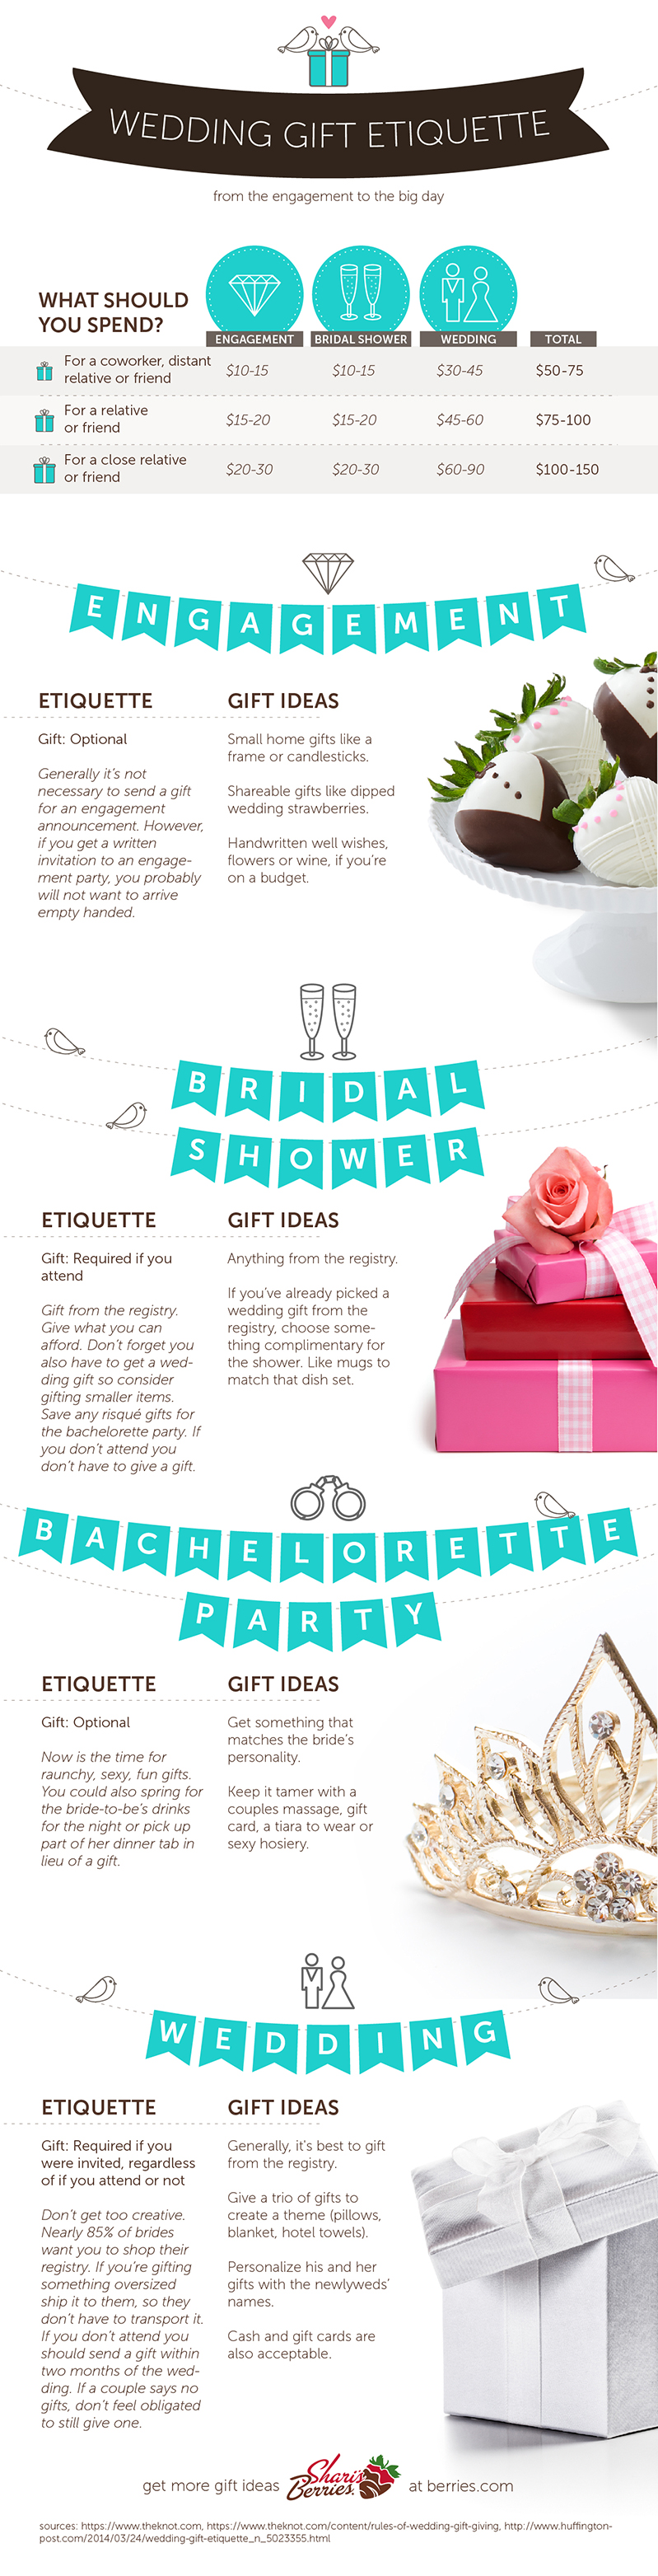 Etiquette For Wedding Gifts When Not Attending : Here Comes More Gift Ideas